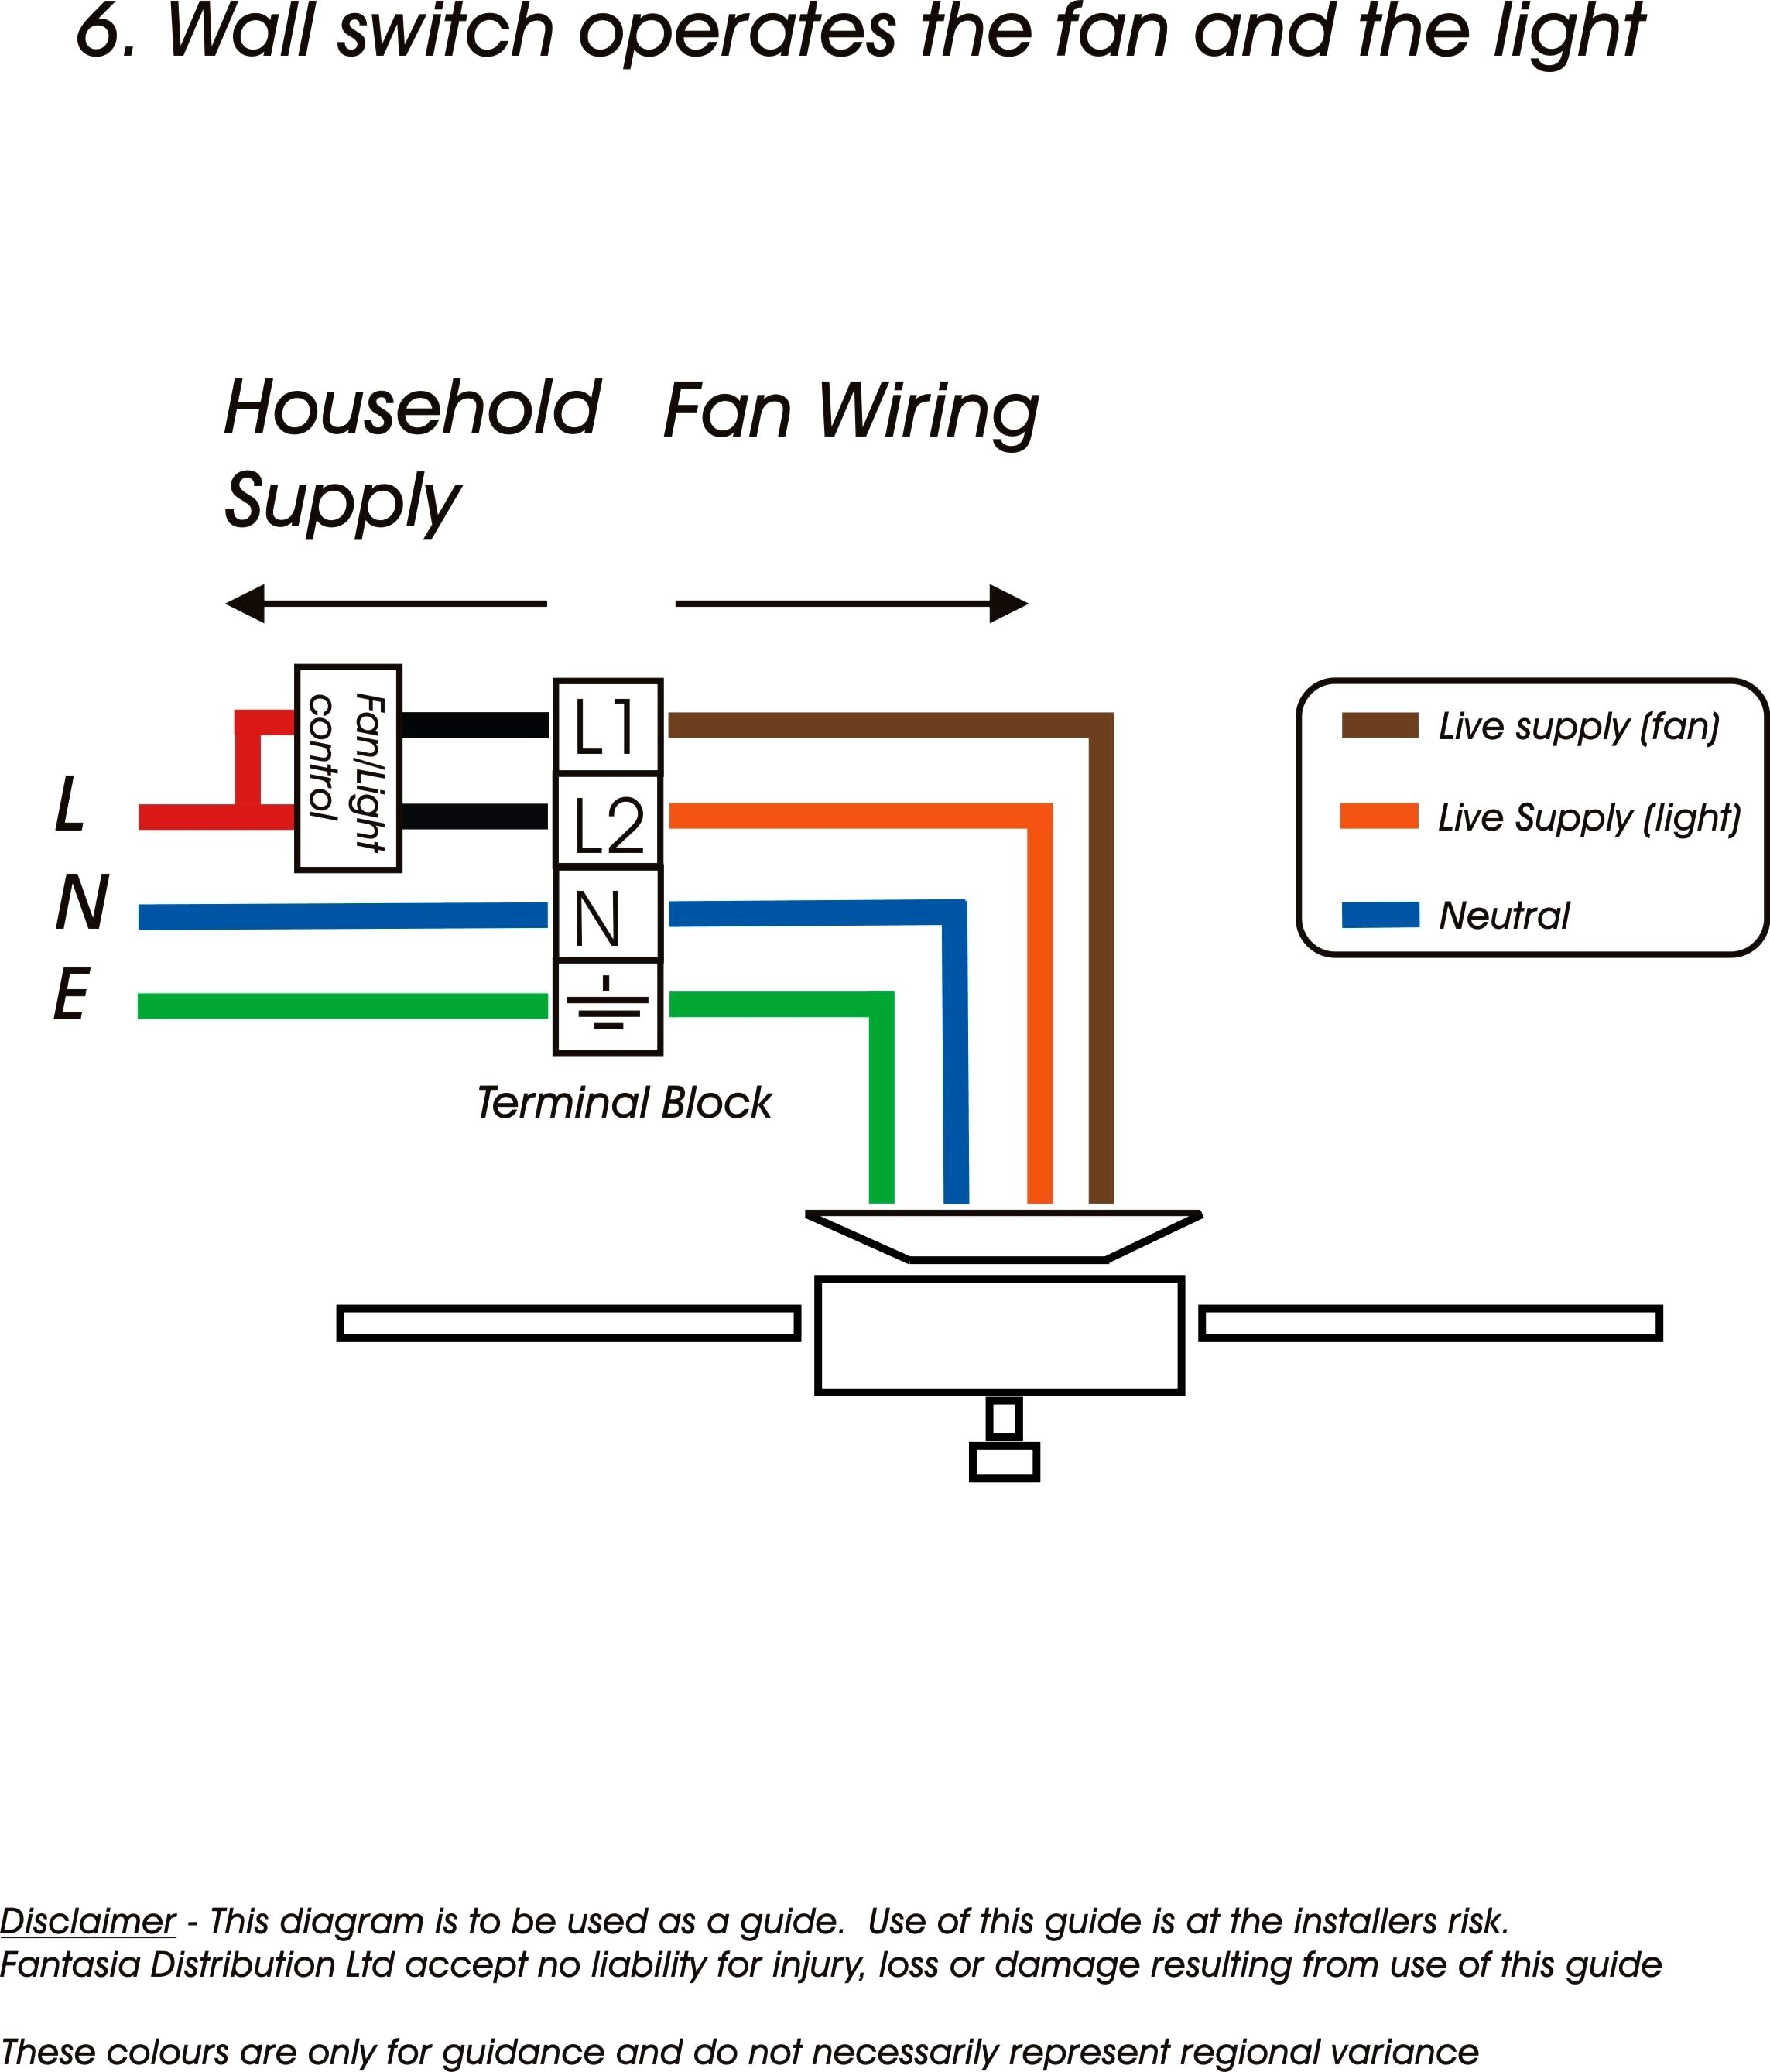 6dac24e4ec340964f4ce61a5030f463a smc ceiling fan wiring diagram bottlesandblends smc fan wiring diagram at gsmx.co